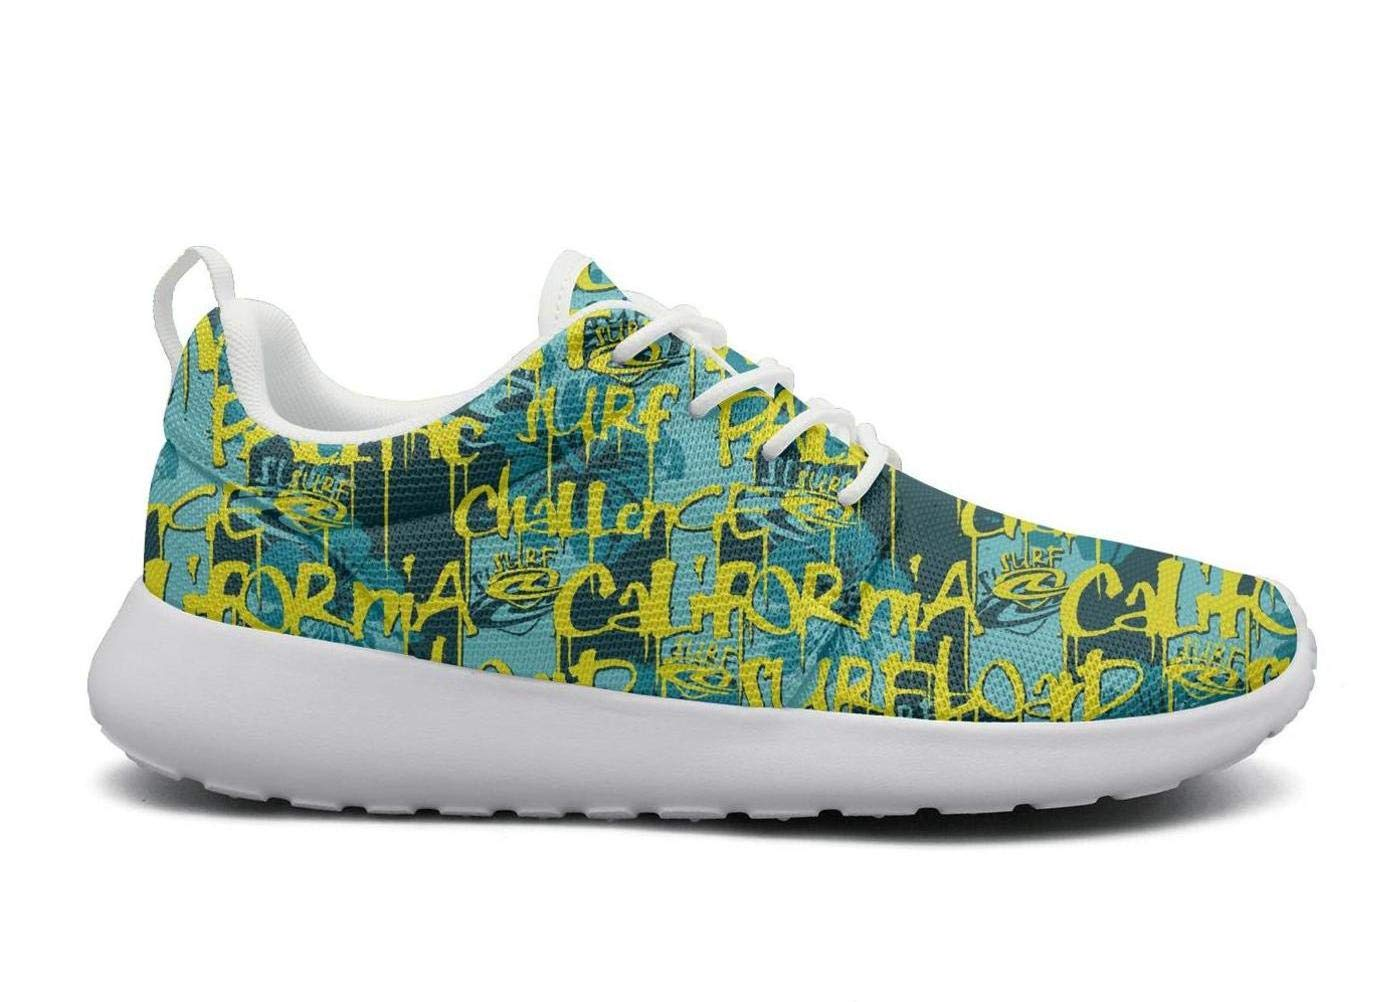 ERSER California Surfing Company Printed lace-up Running Shoes Women